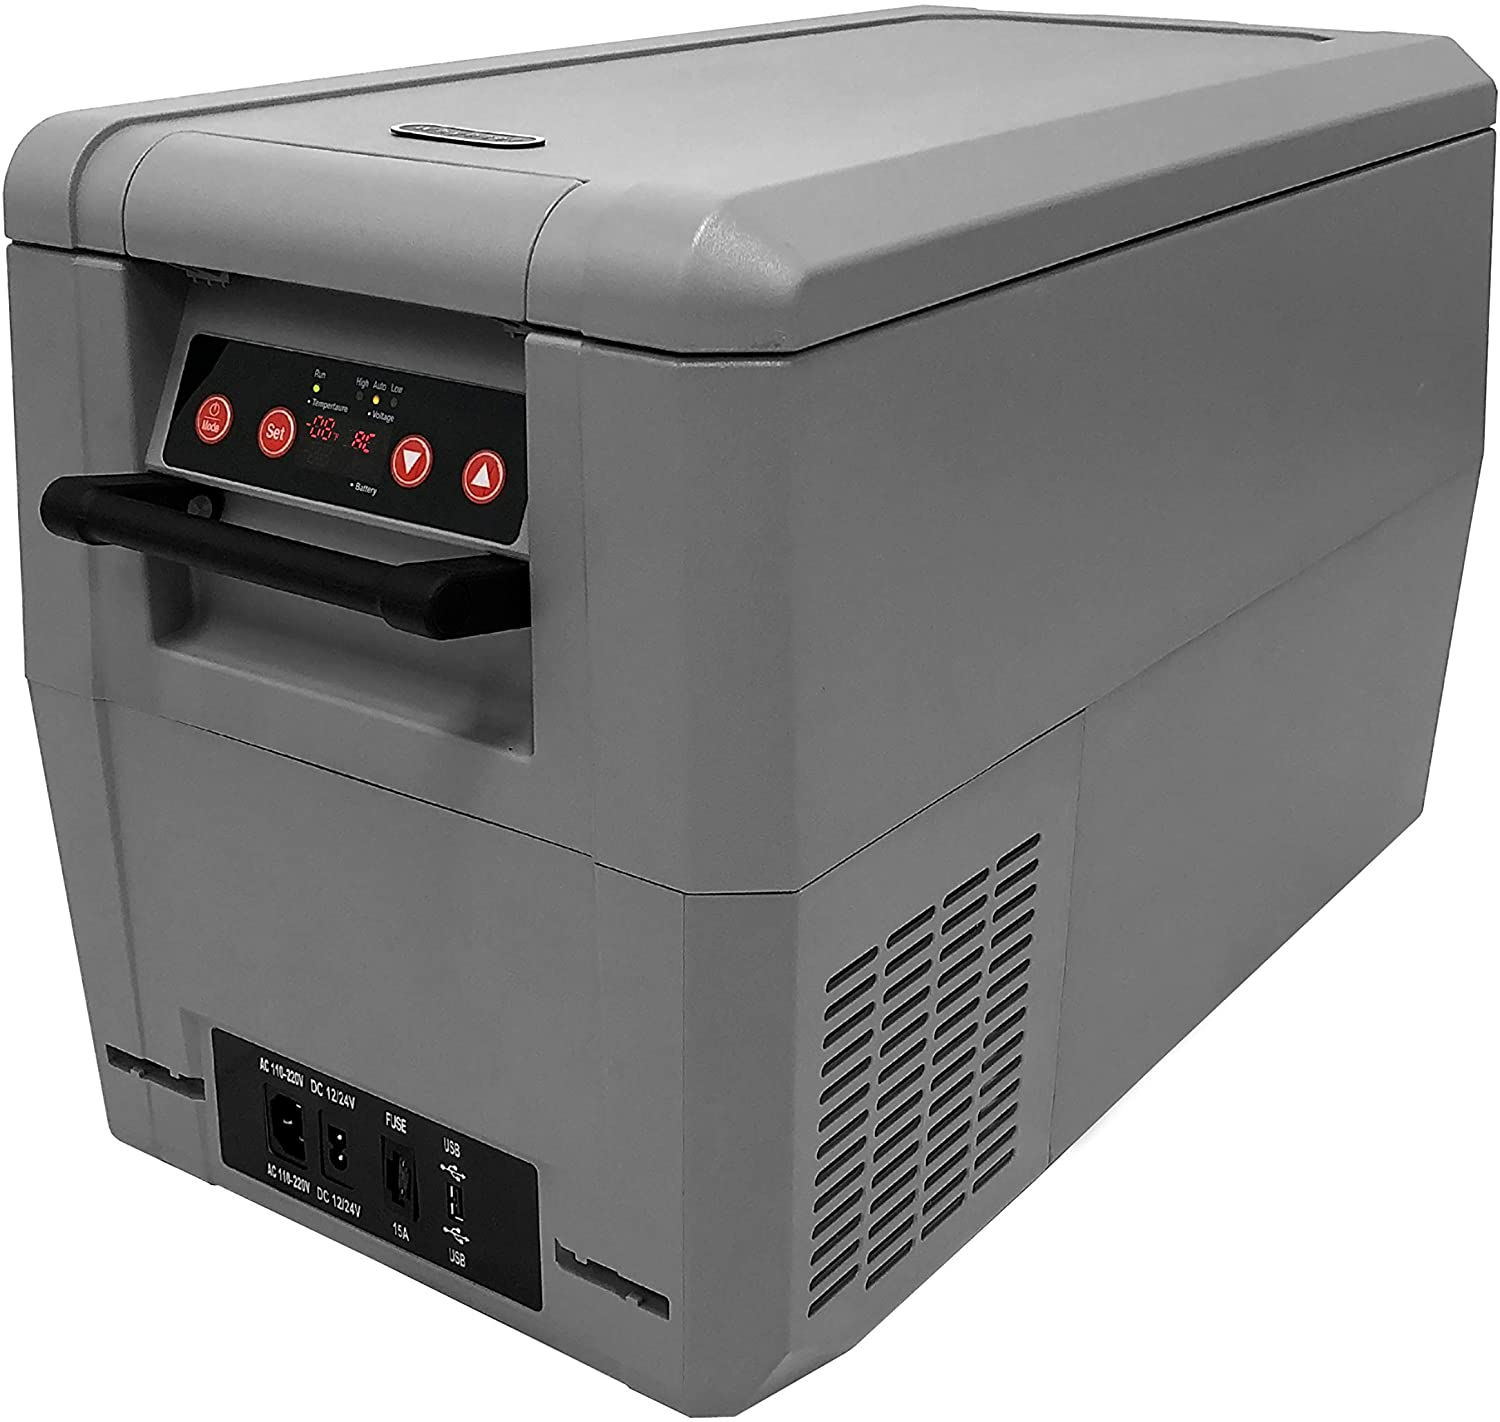 Whynter FMC-350XP 34 Qt Compact Portable Refrigerator